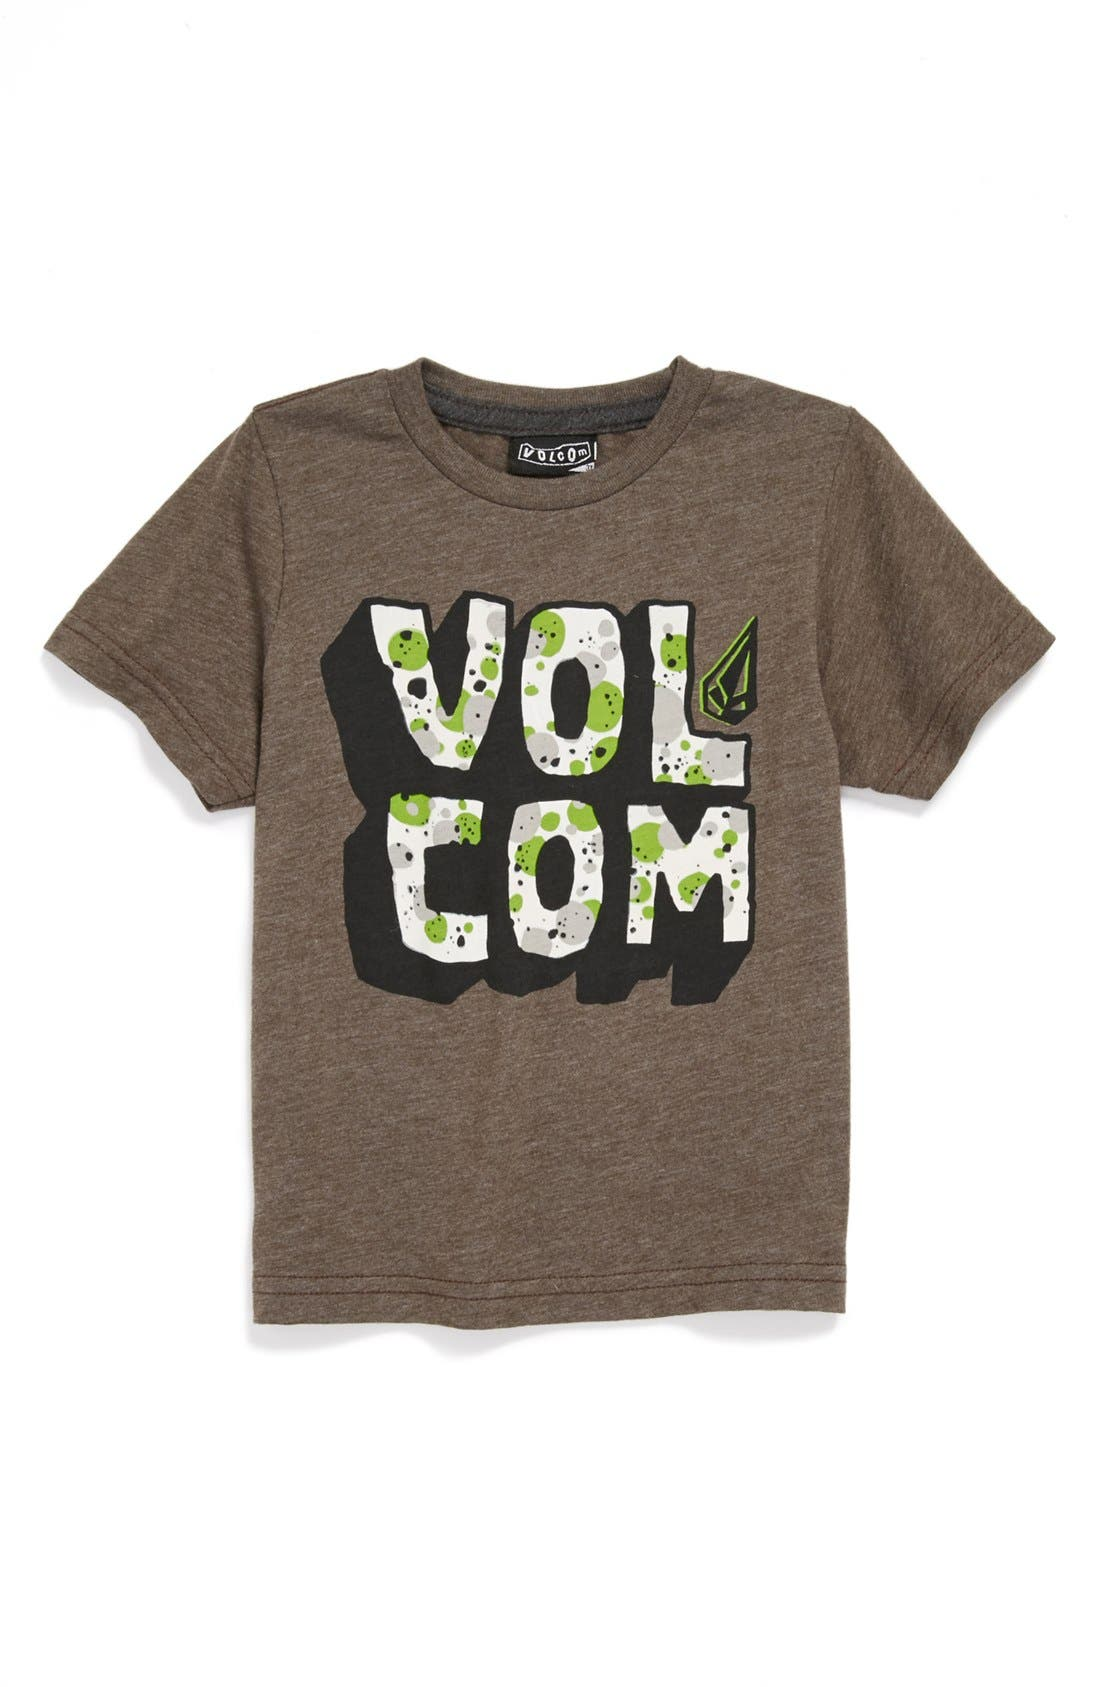 Alternate Image 1 Selected - Volcom 'Sieben' T-Shirt (Toddler)